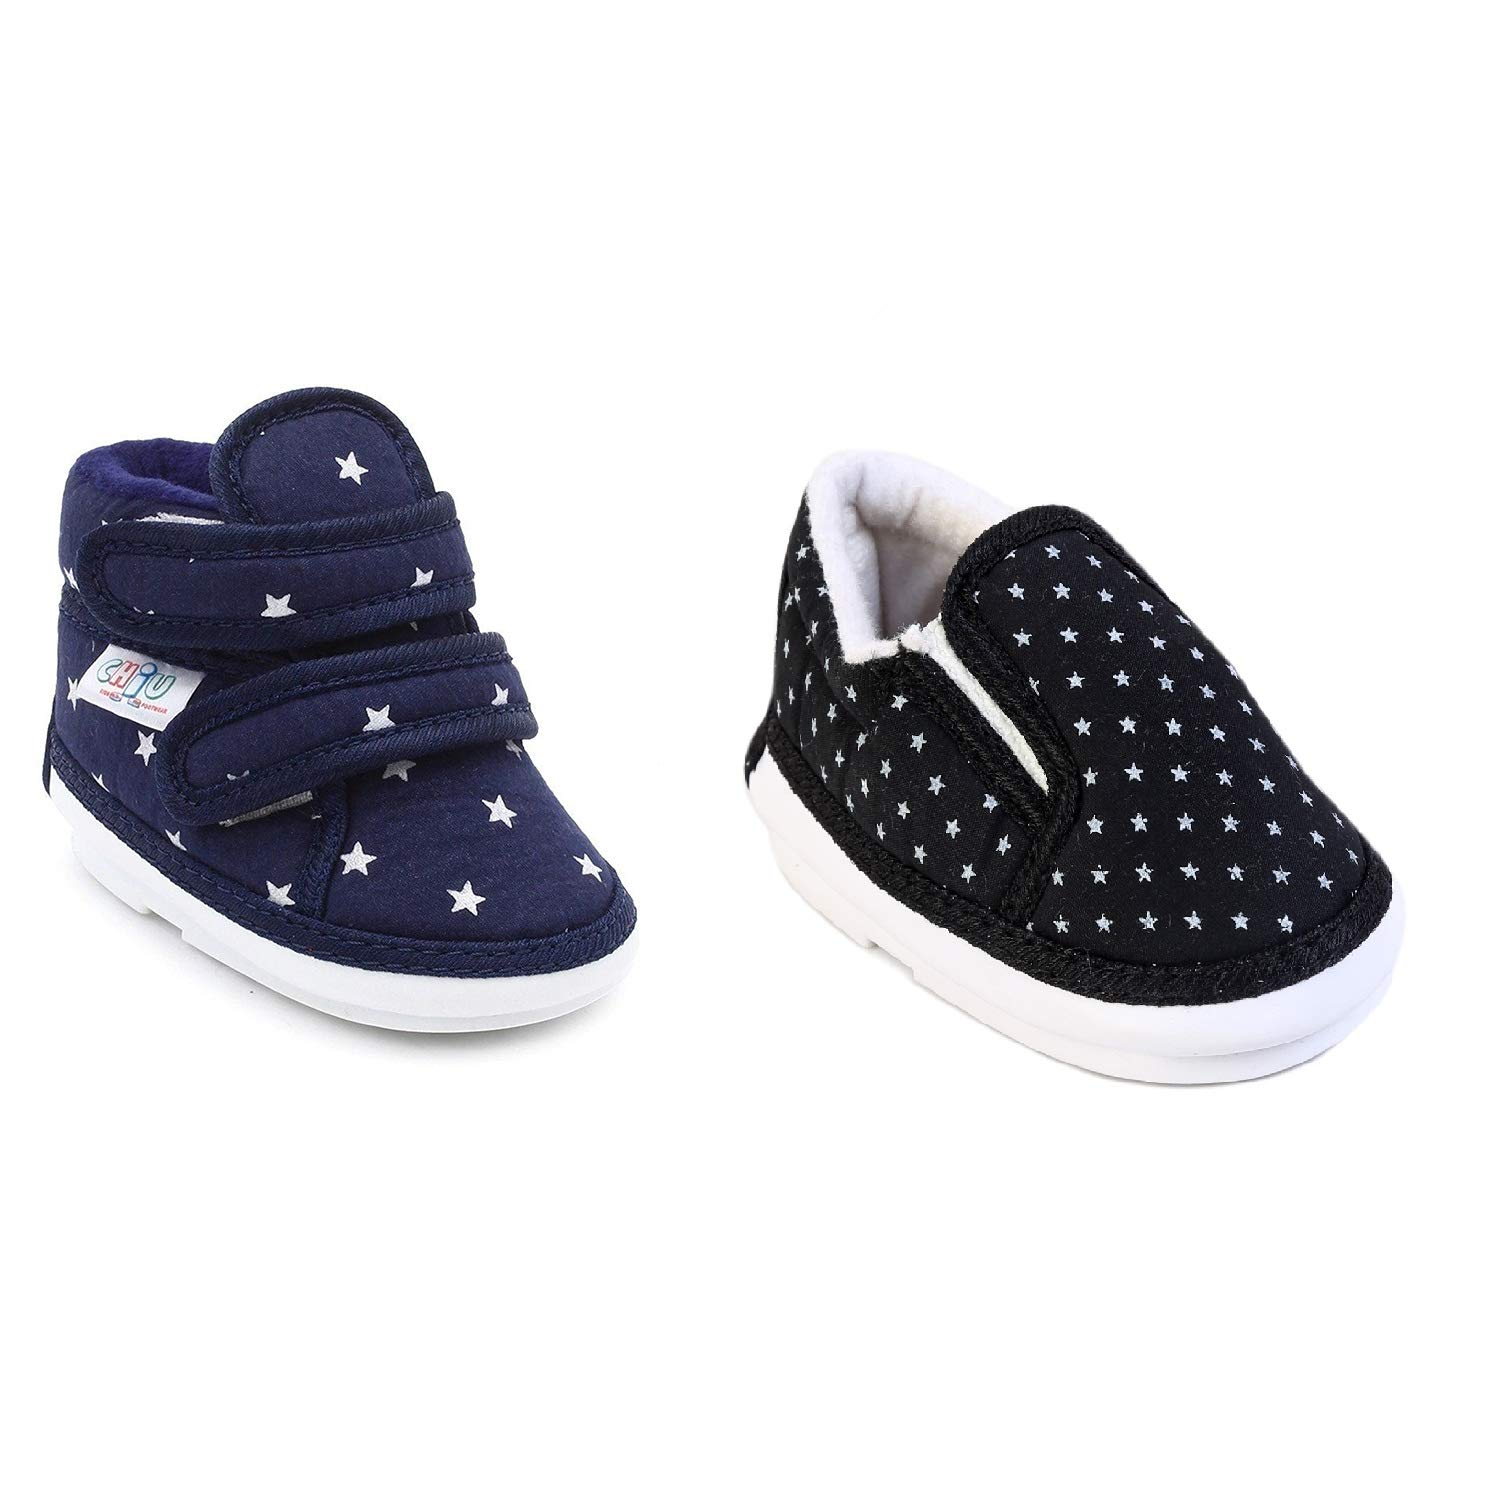 Star Shoes for 18-20 Months Baby Boy